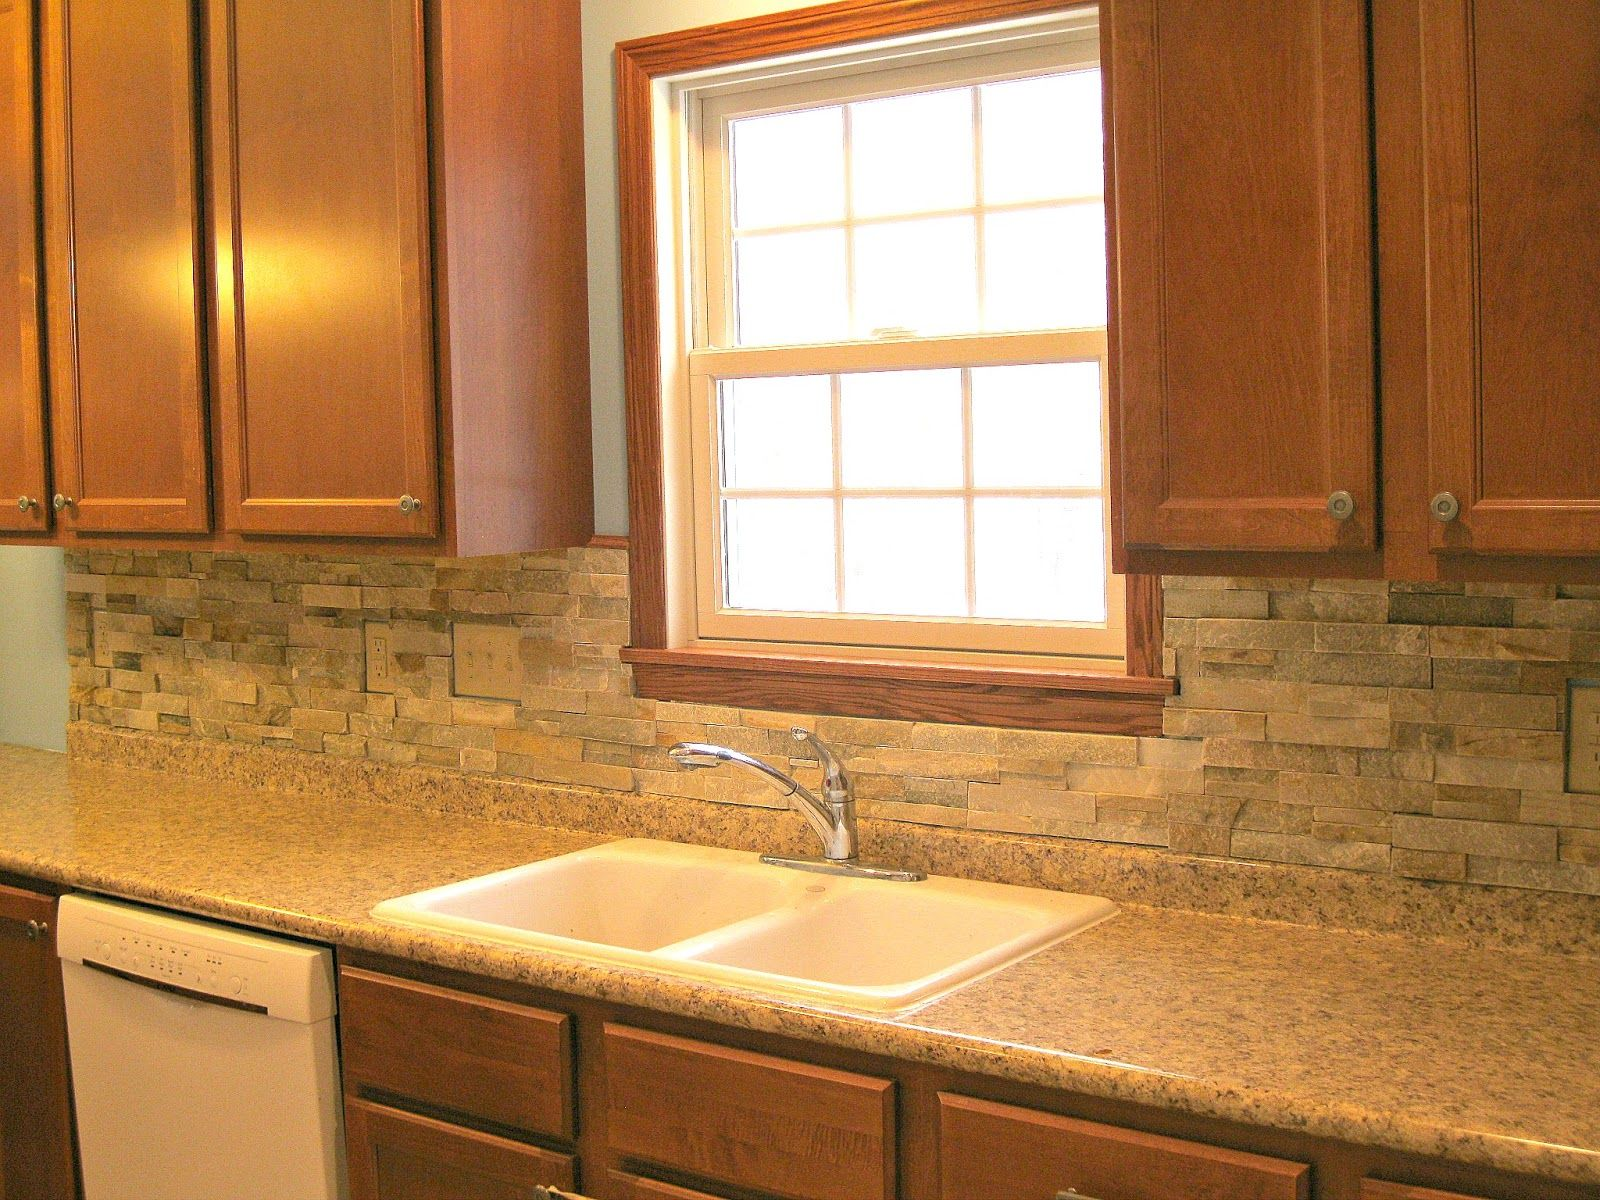 Kitchen Backsplash | For the Home | Pinterest